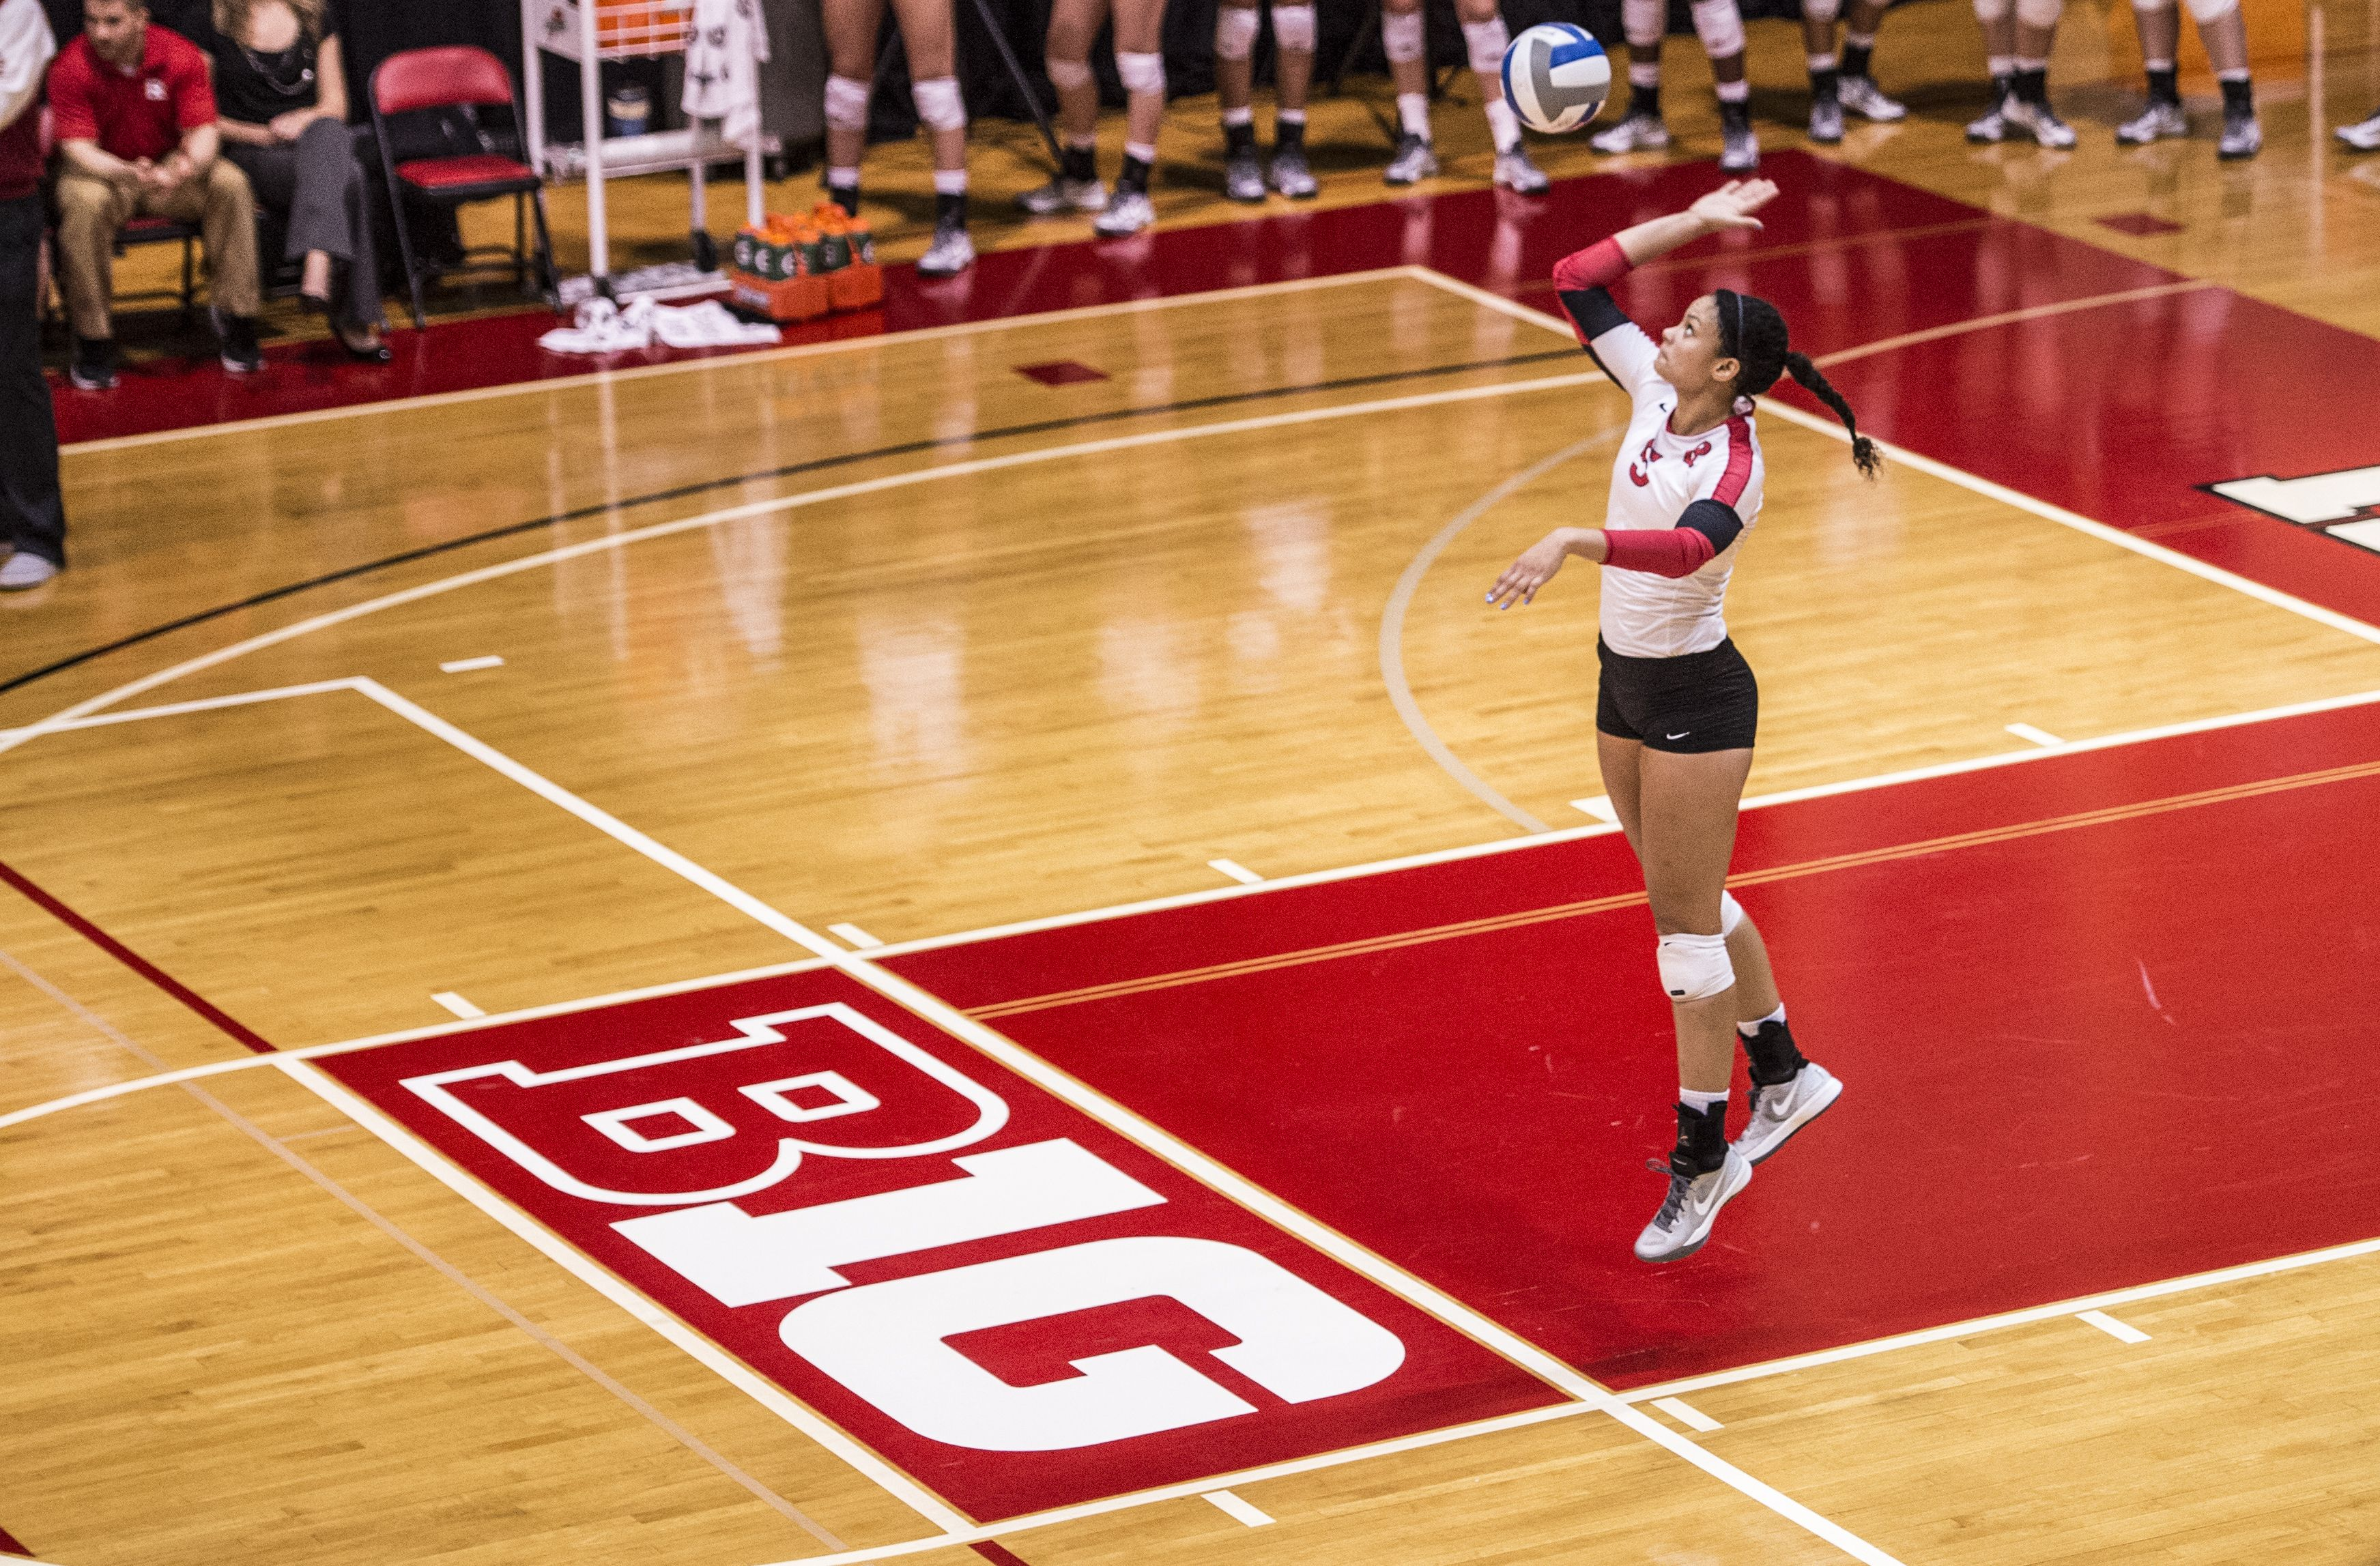 Rutgers Volleyball Meme Fletcher Strong Words Amazing Pics High School